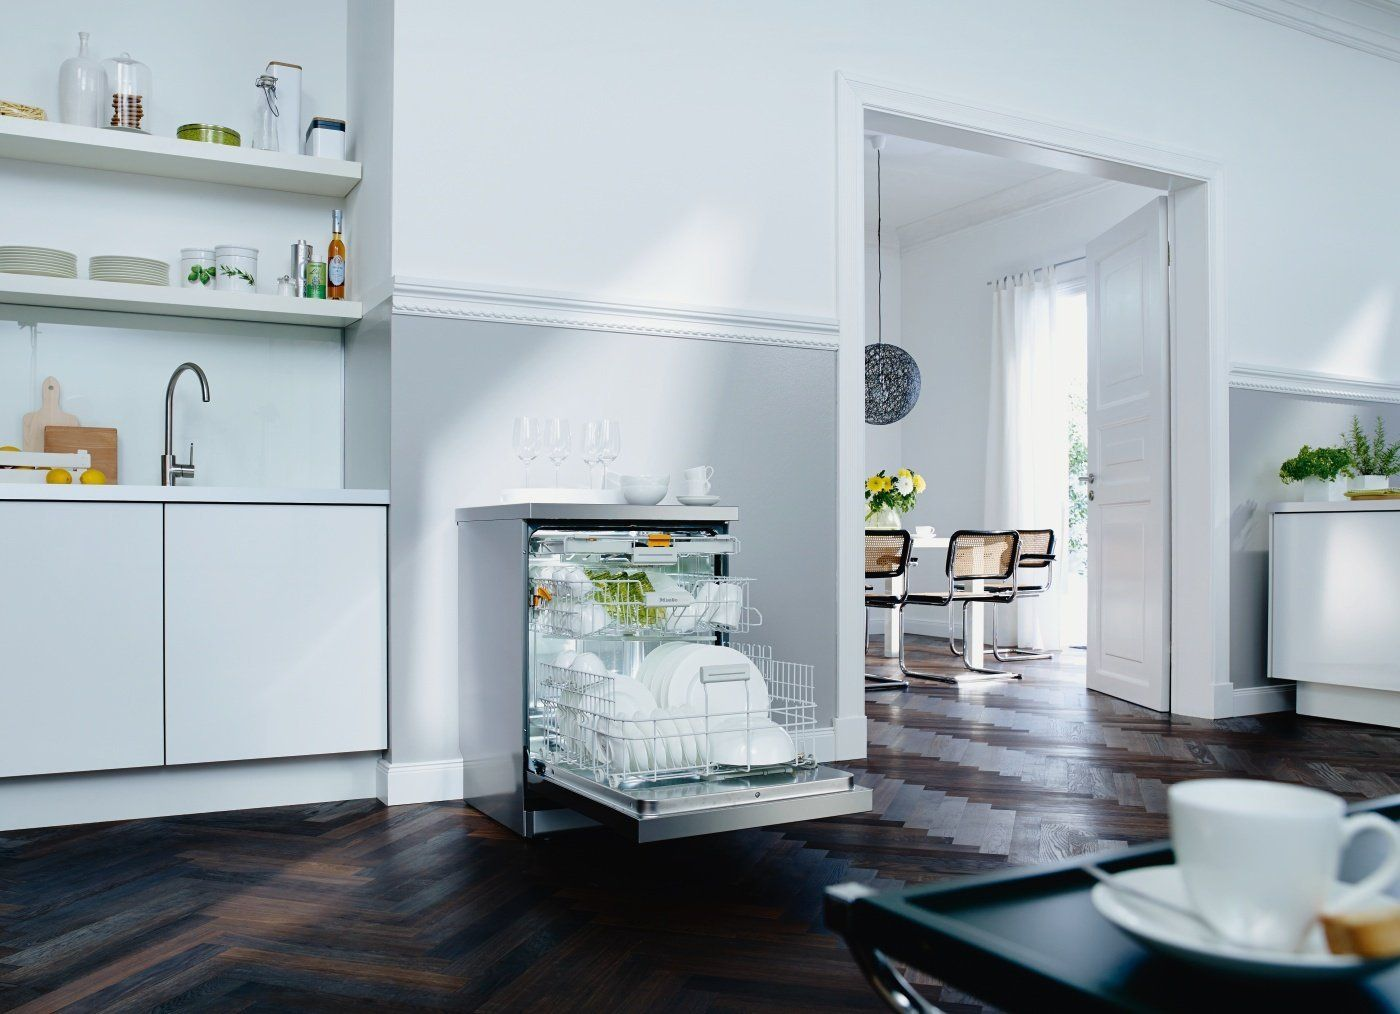 miele g6300 scu ecoline geschirrsp ler im test 2018 expertentesten. Black Bedroom Furniture Sets. Home Design Ideas